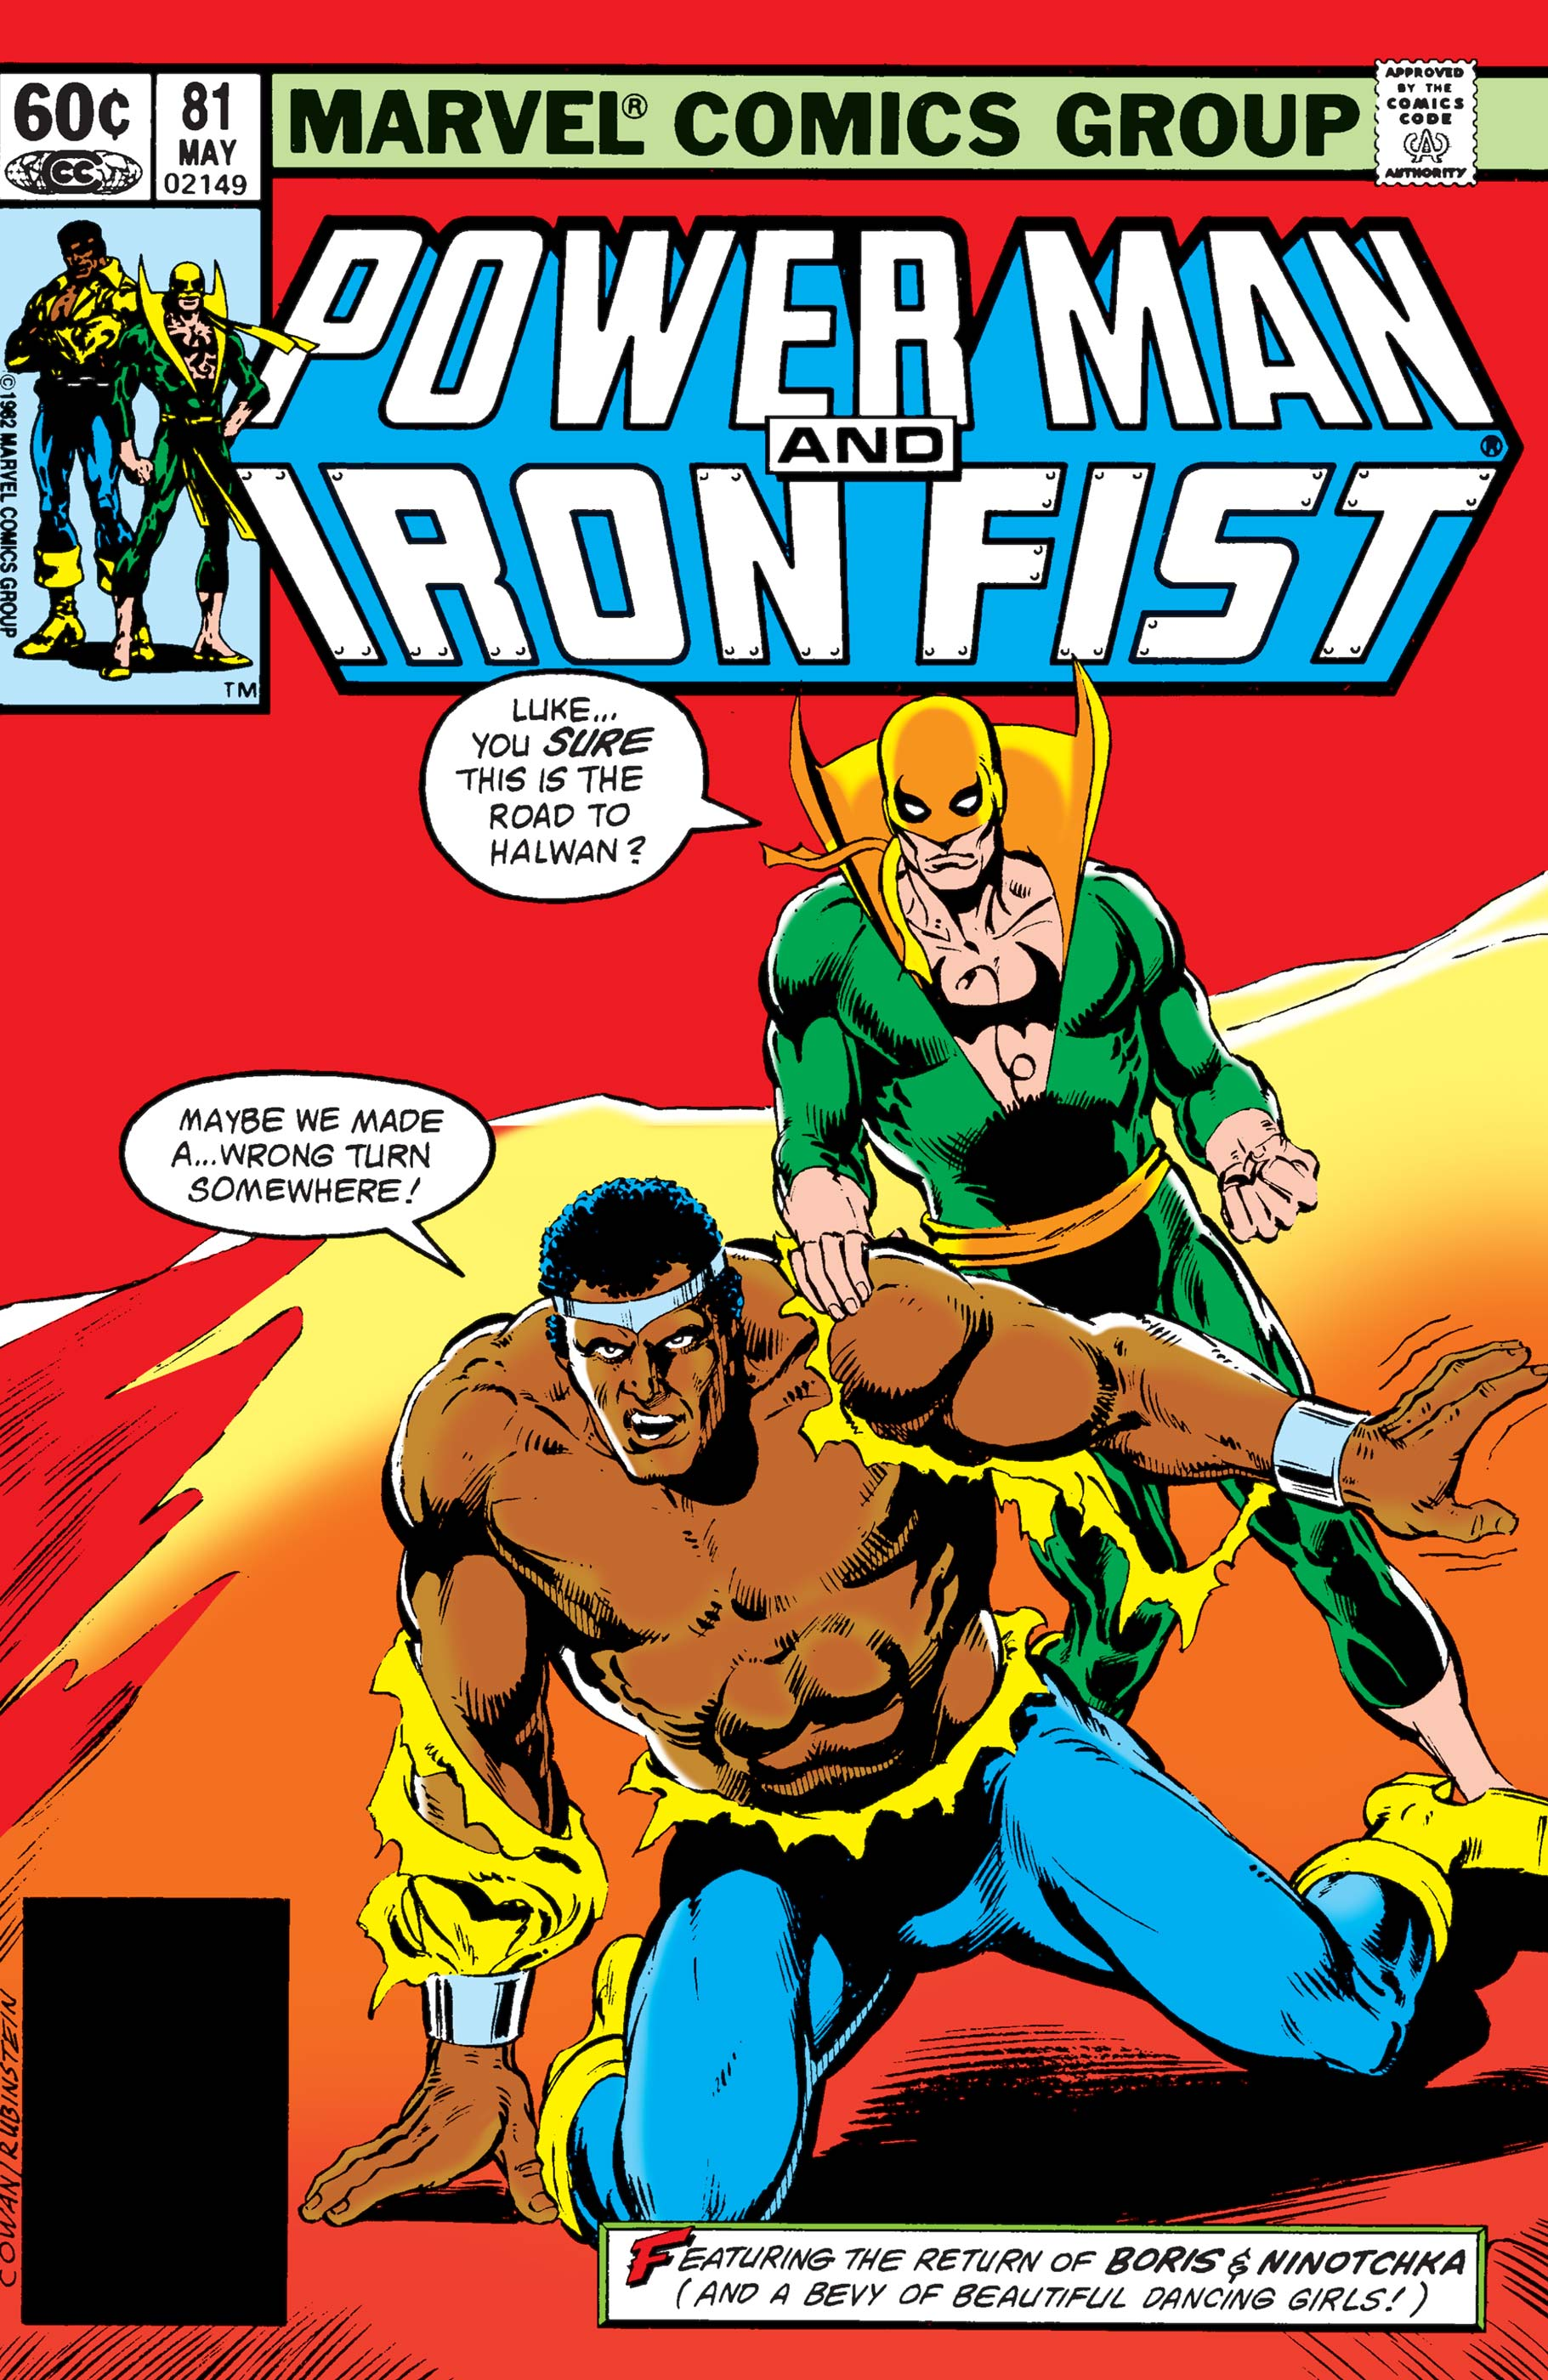 Power Man and Iron Fist (1978) #81